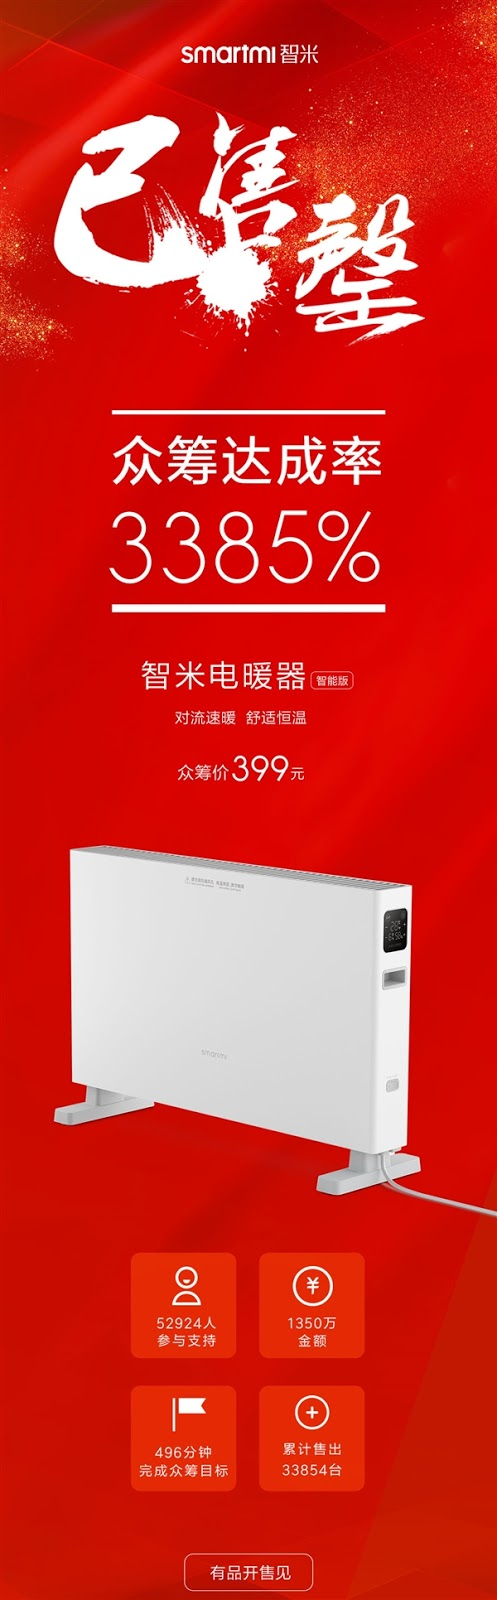 xiaomi smartmi electric heater smart version